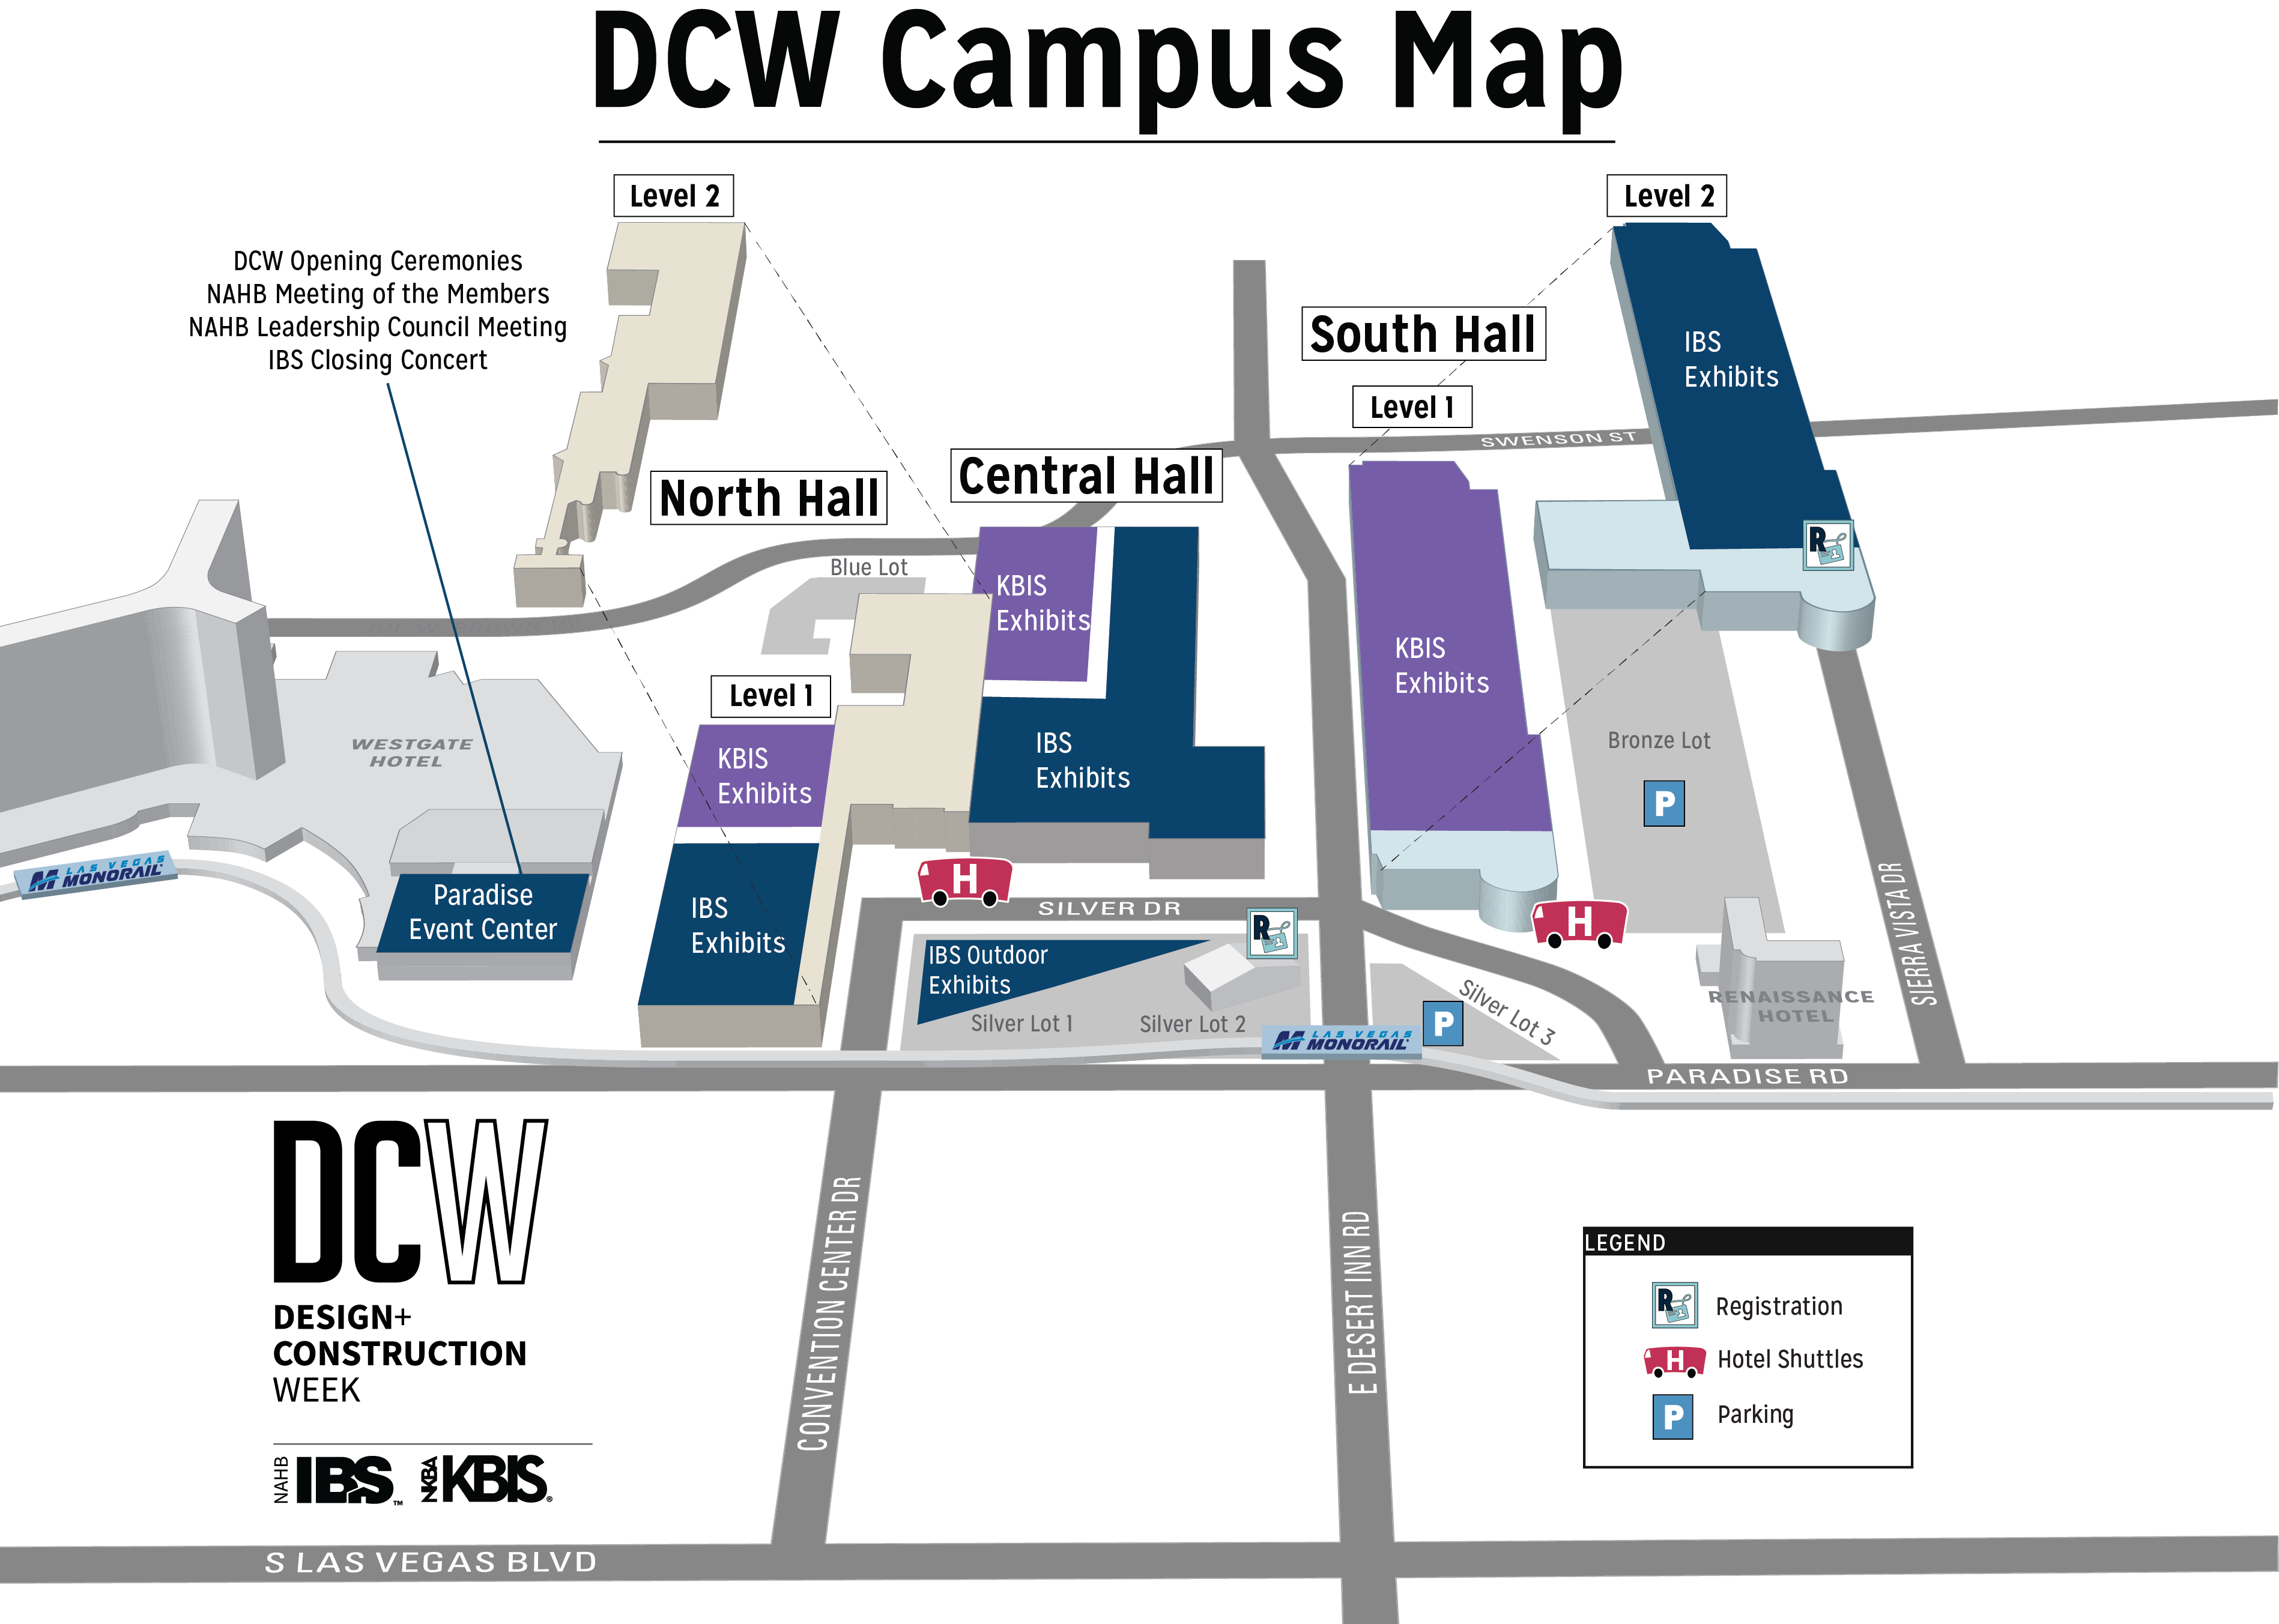 dcw campus map